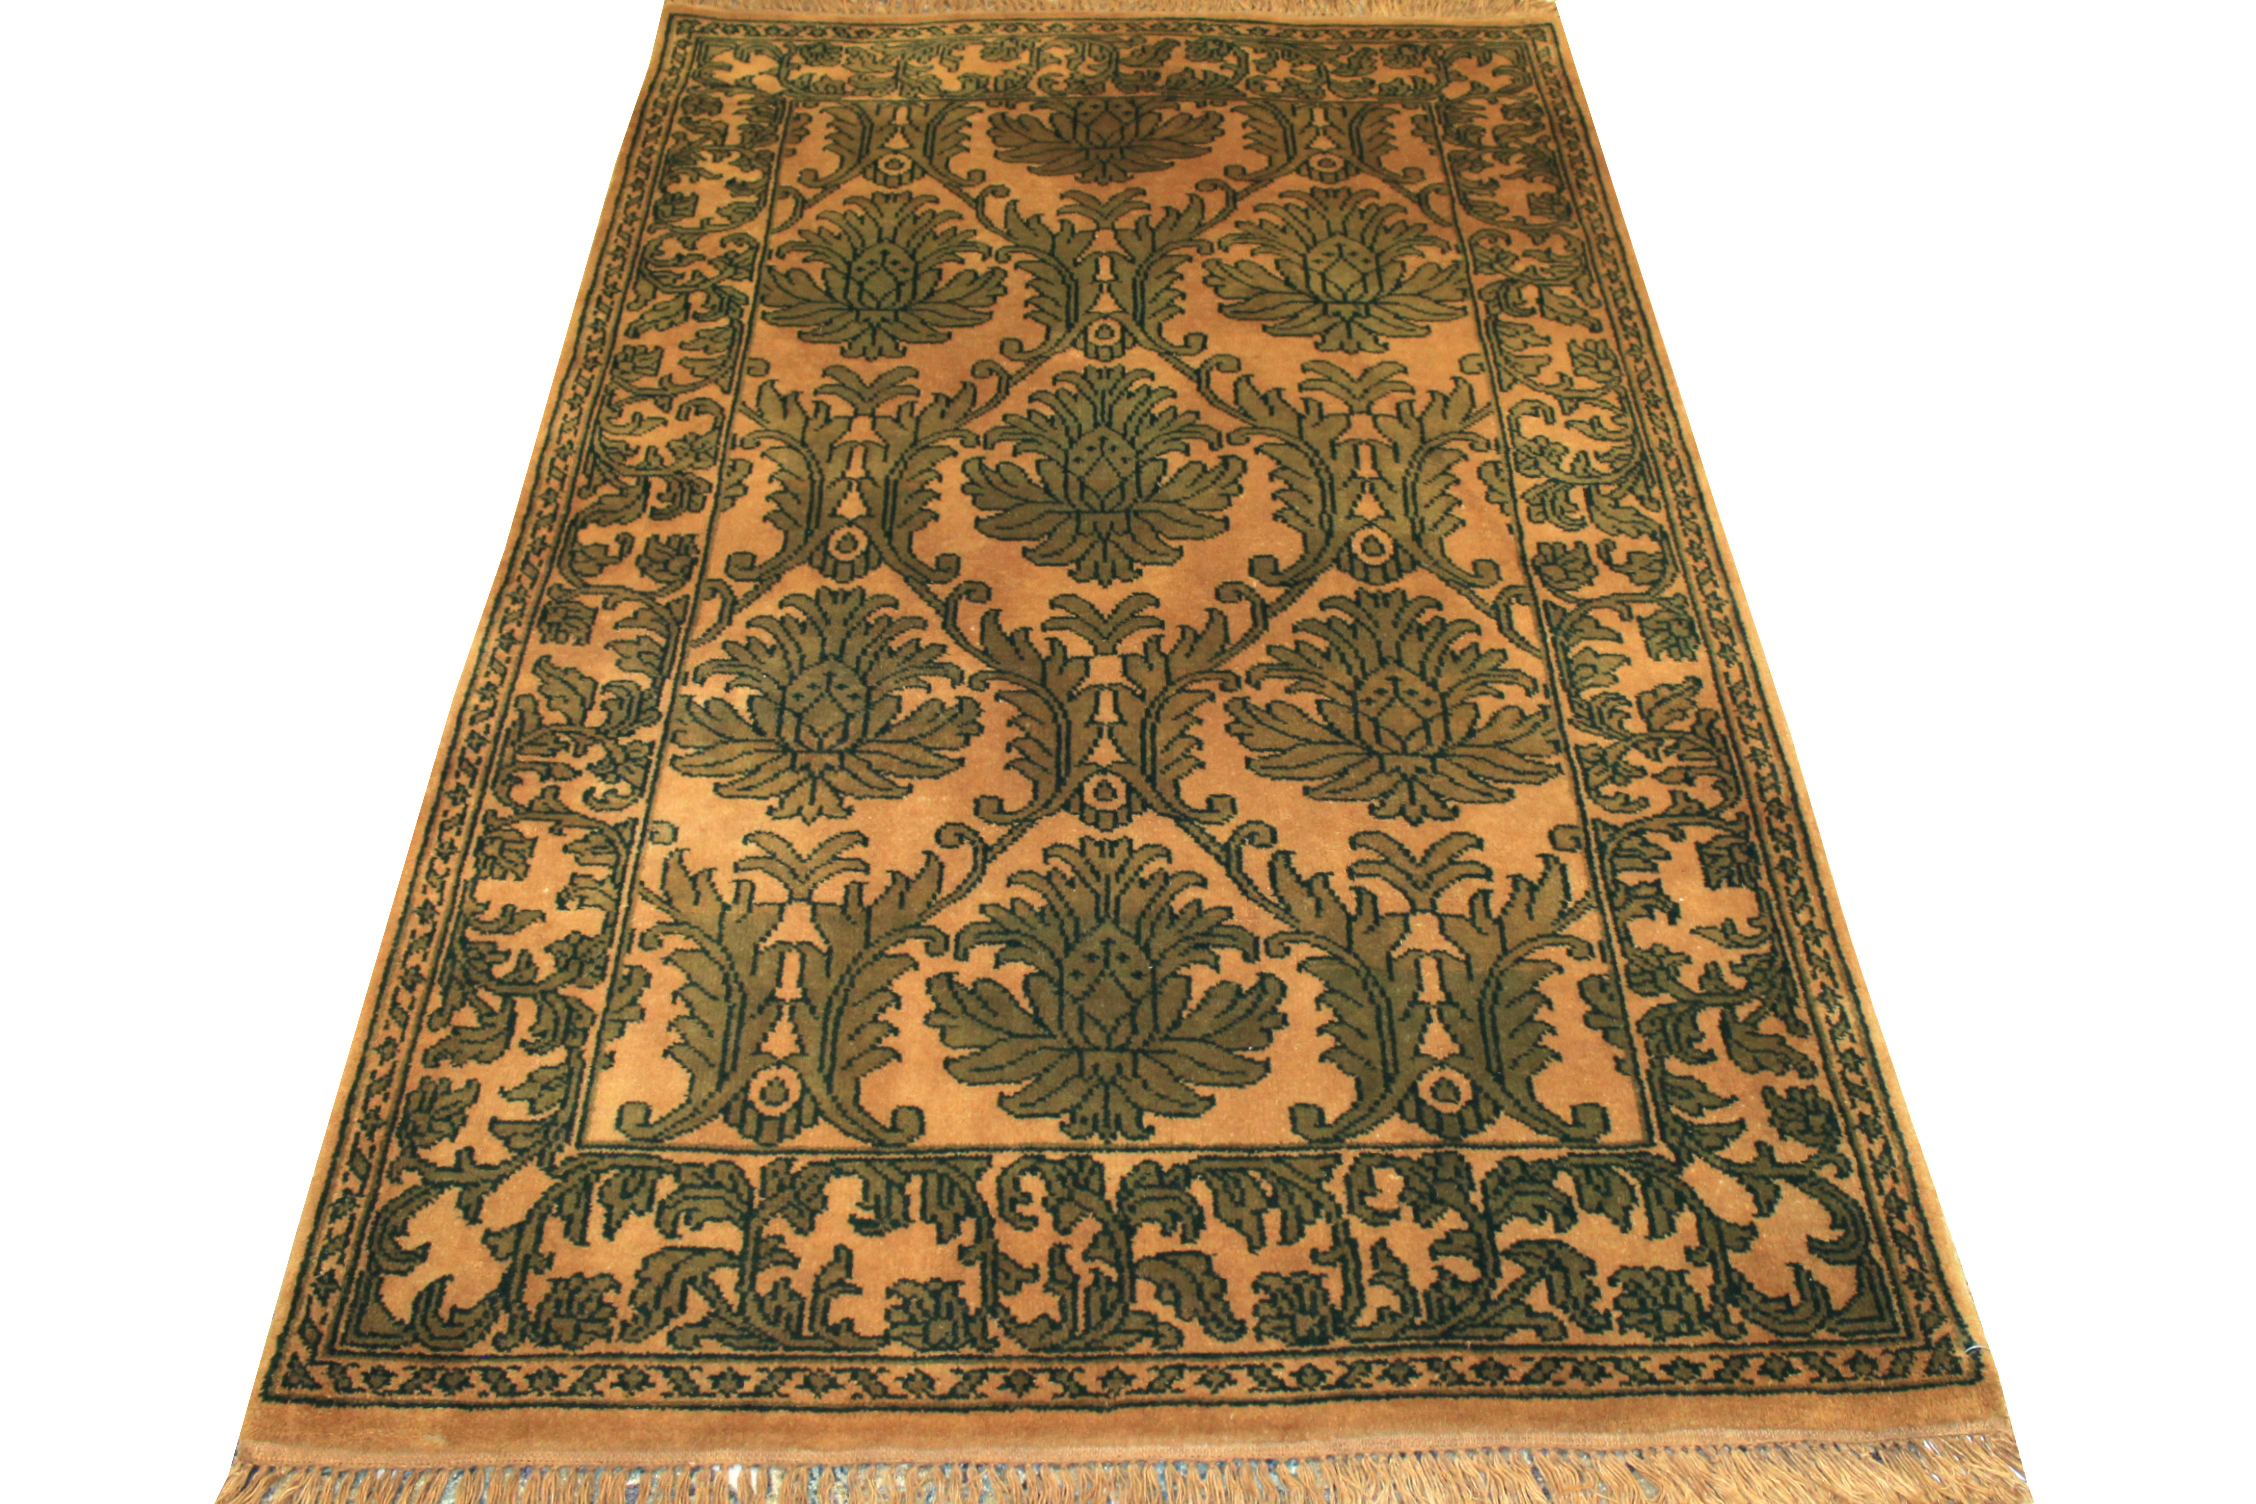 4x6 Traditional Hand Knotted Wool Area Rug - MR000010